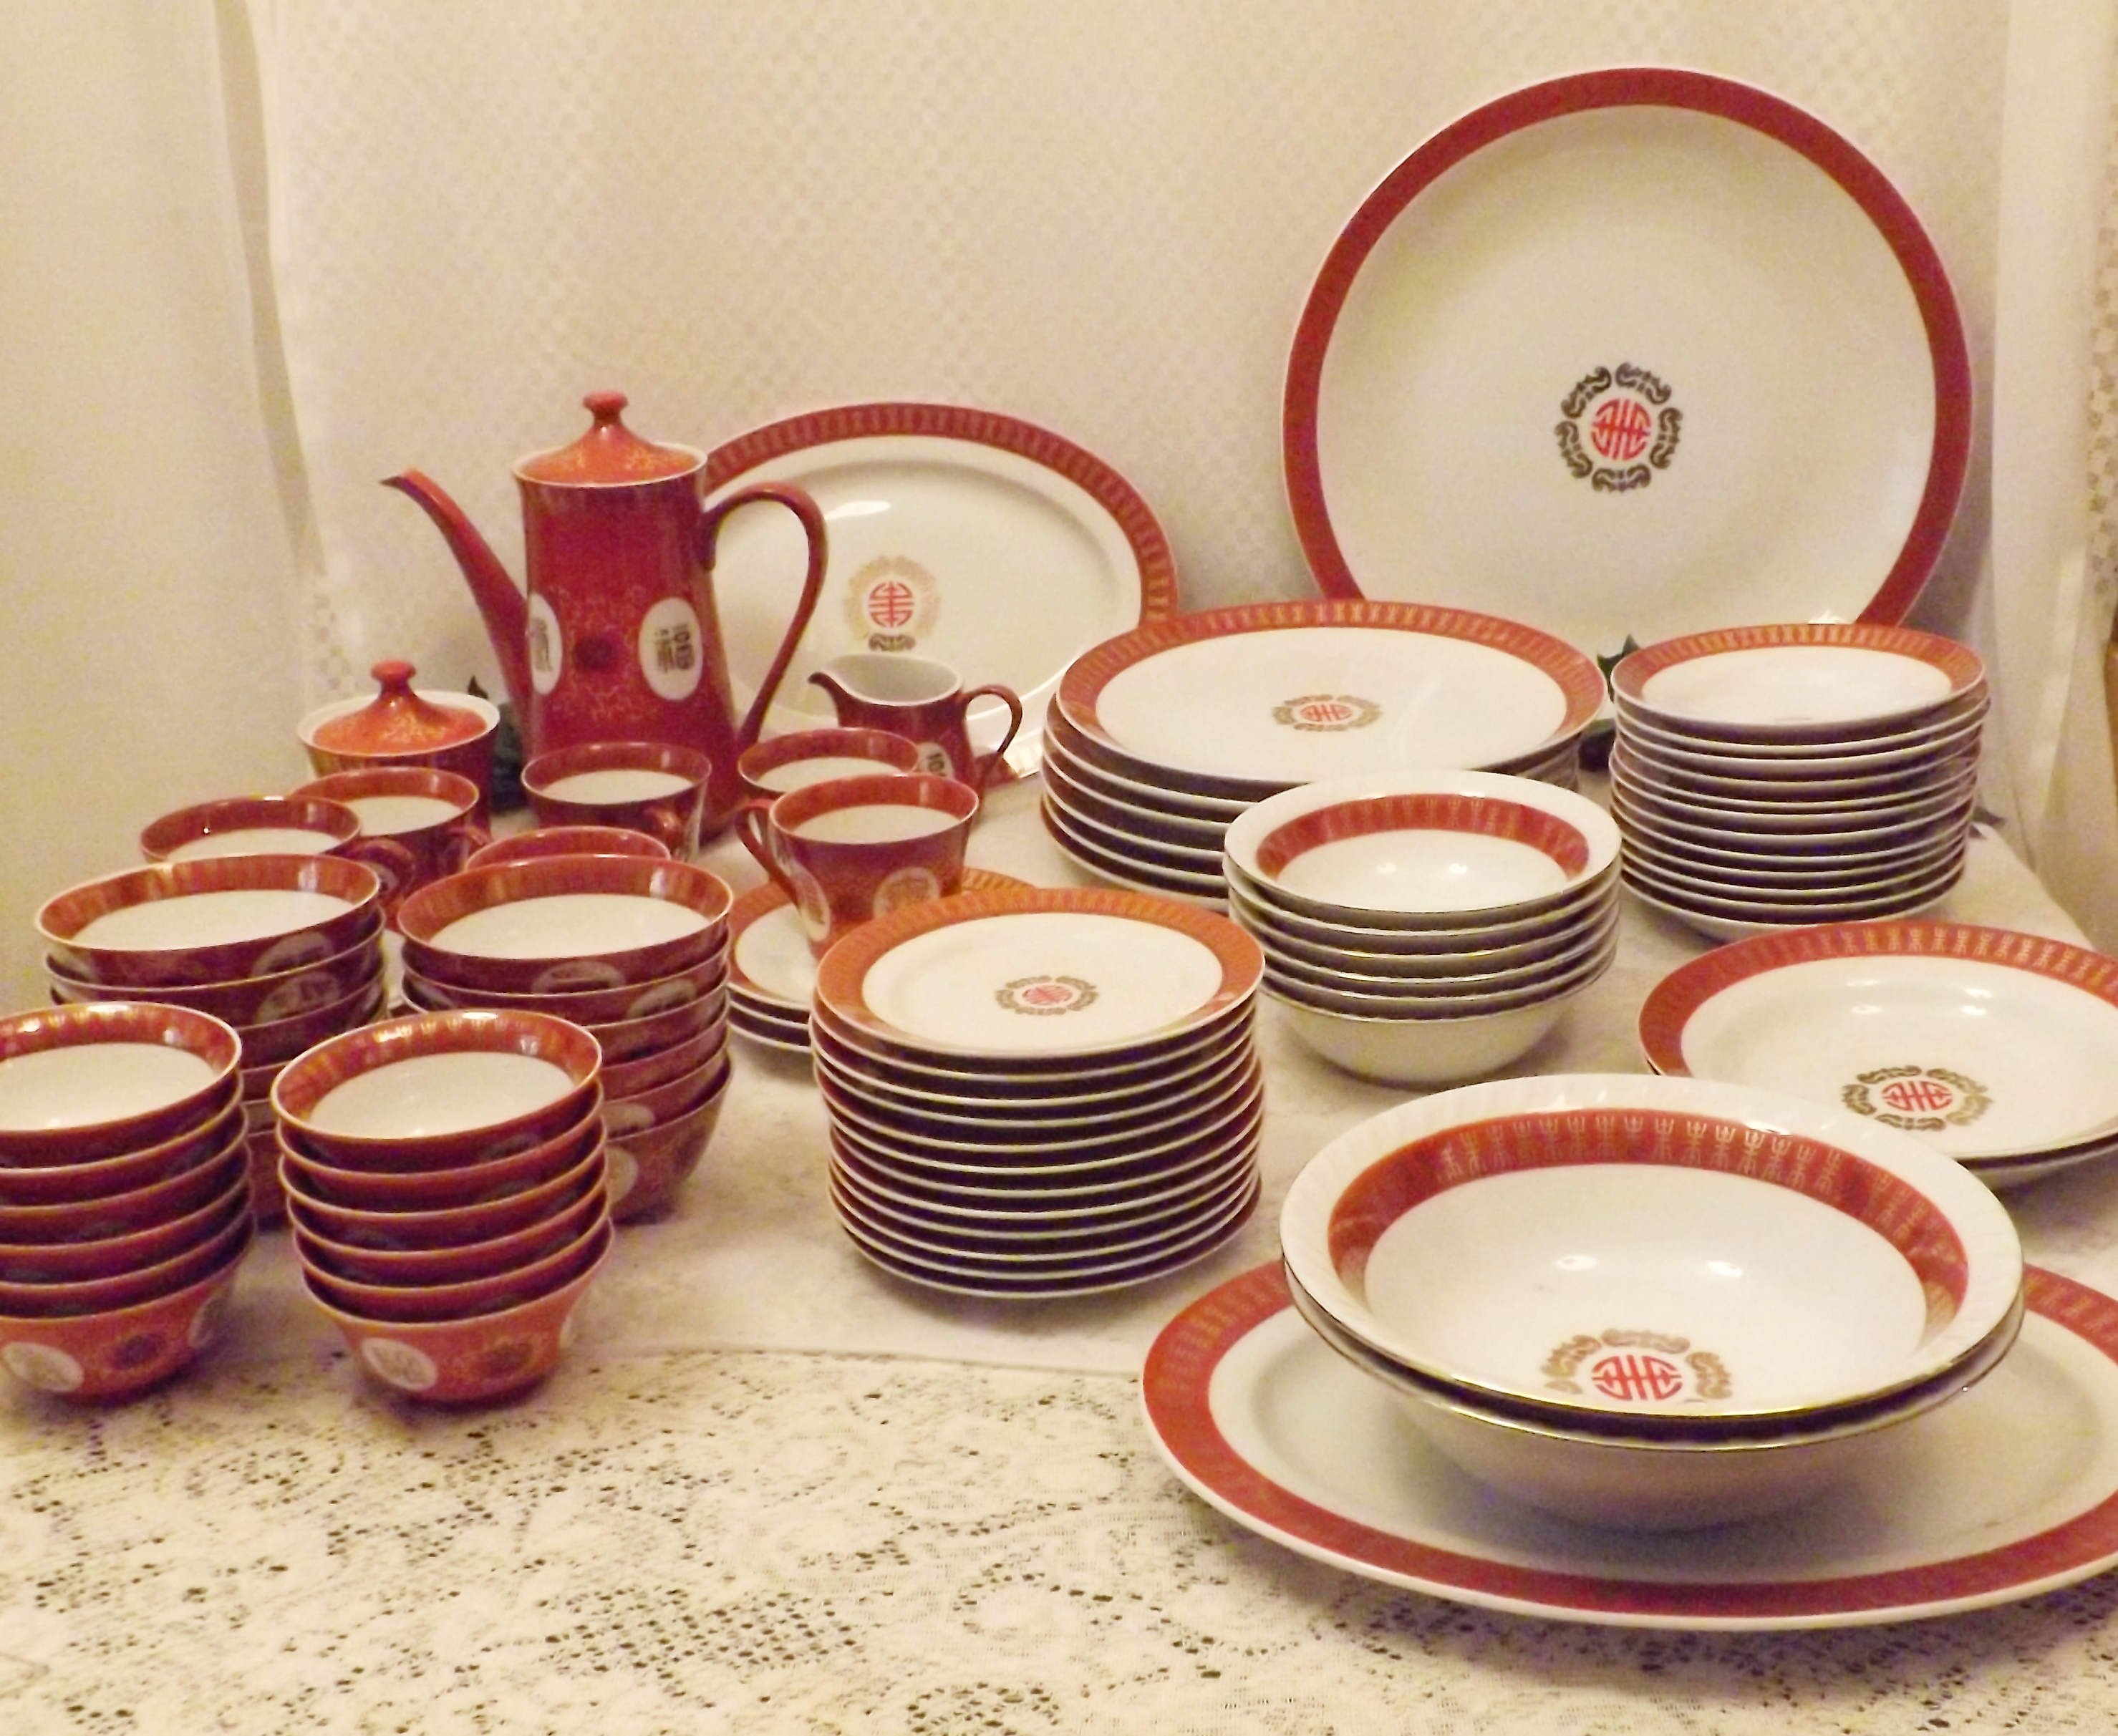 Extensive Porcelain Dinnerware Set With Multiple Serving And Hostess  Pieces. Orange And White With A Gold Design And Gold Edge Trim. Pointed  Chinese Symbol ...